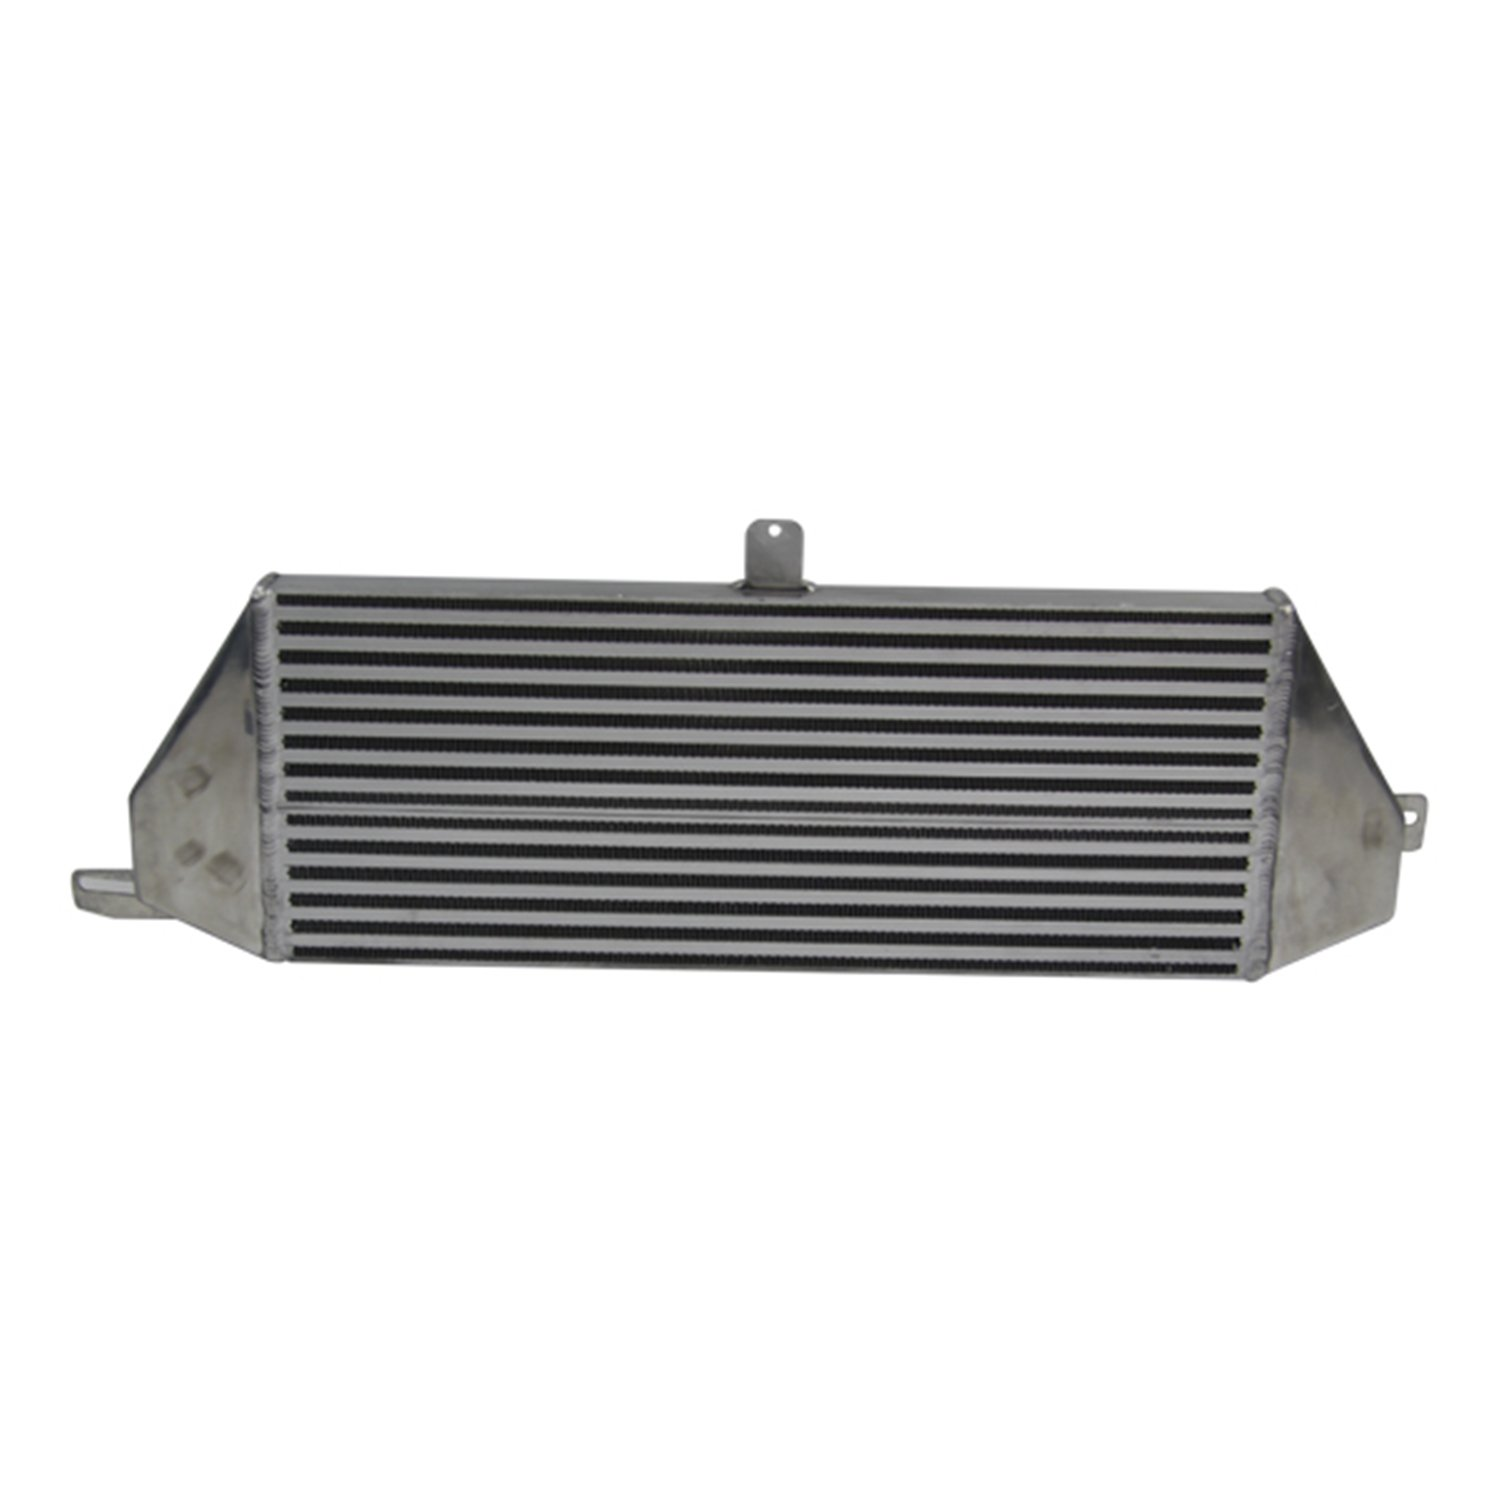 Primecooling Front Mount Aluminum Intercooler for BMW MINI Cooper S R56 R57 1.6L 2006-2012